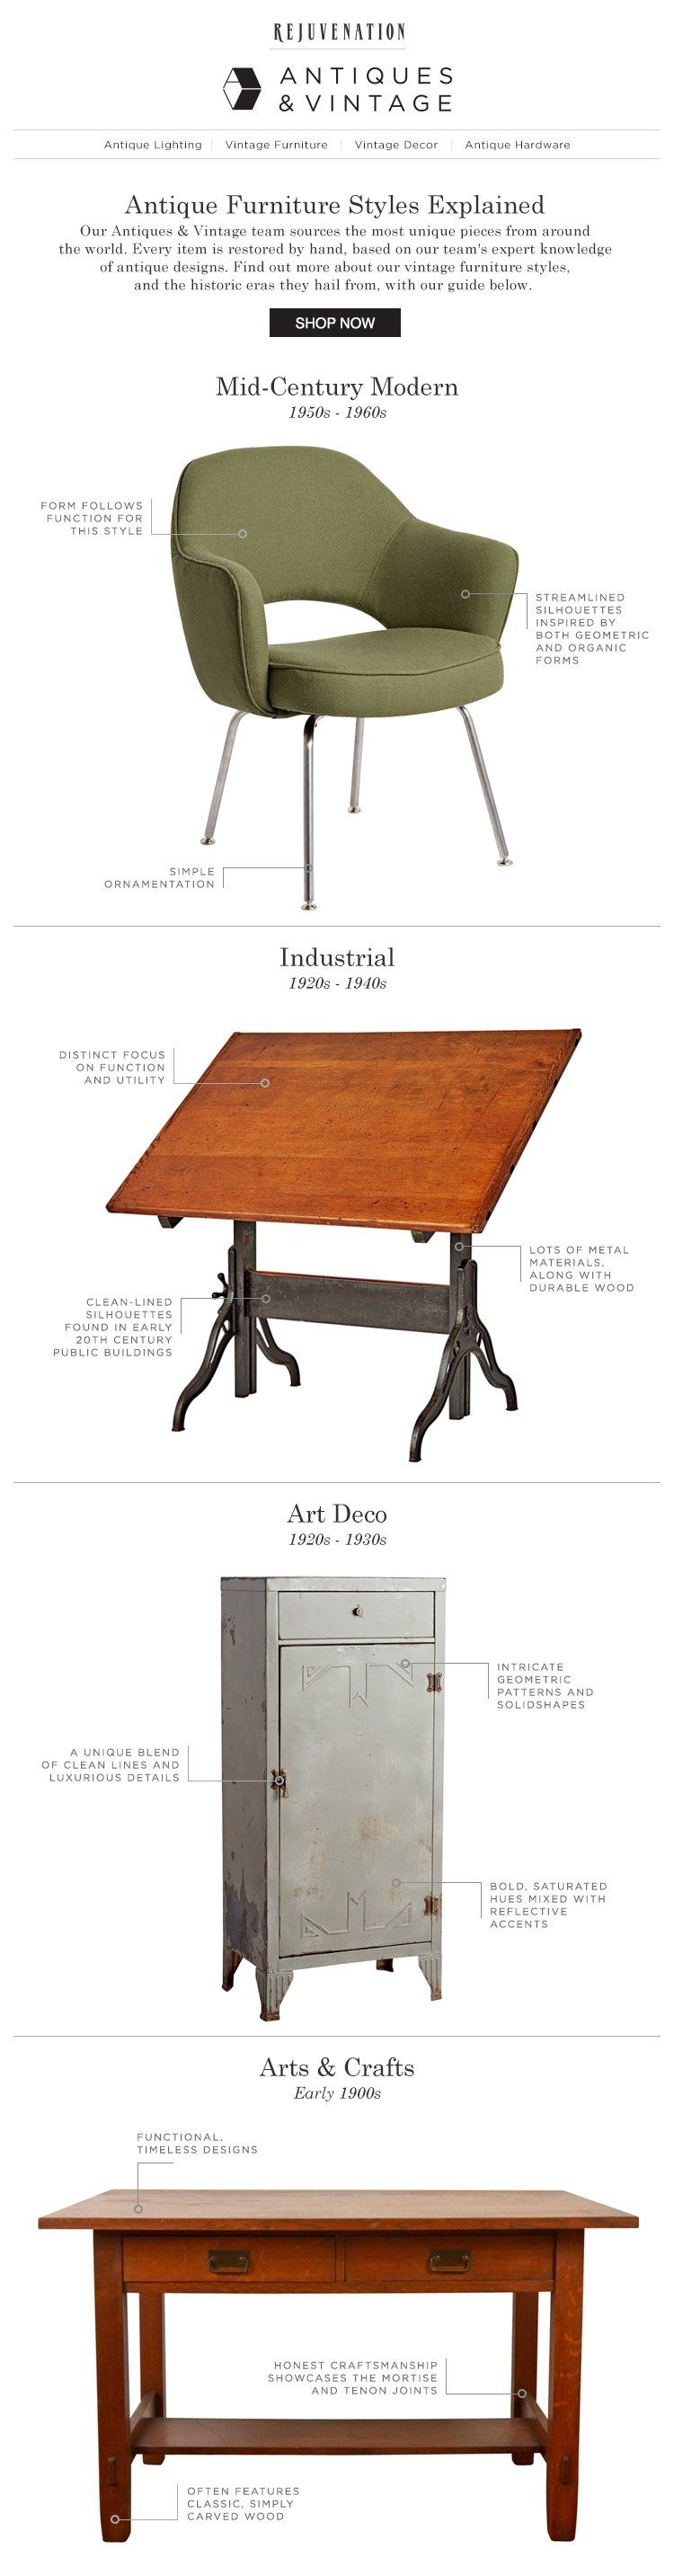 Antique Furniture Styles Explained Mid Century Modern 1950s 1960s 1920s 1940s Art Deco 1930s Arts Crafts Early 1900s